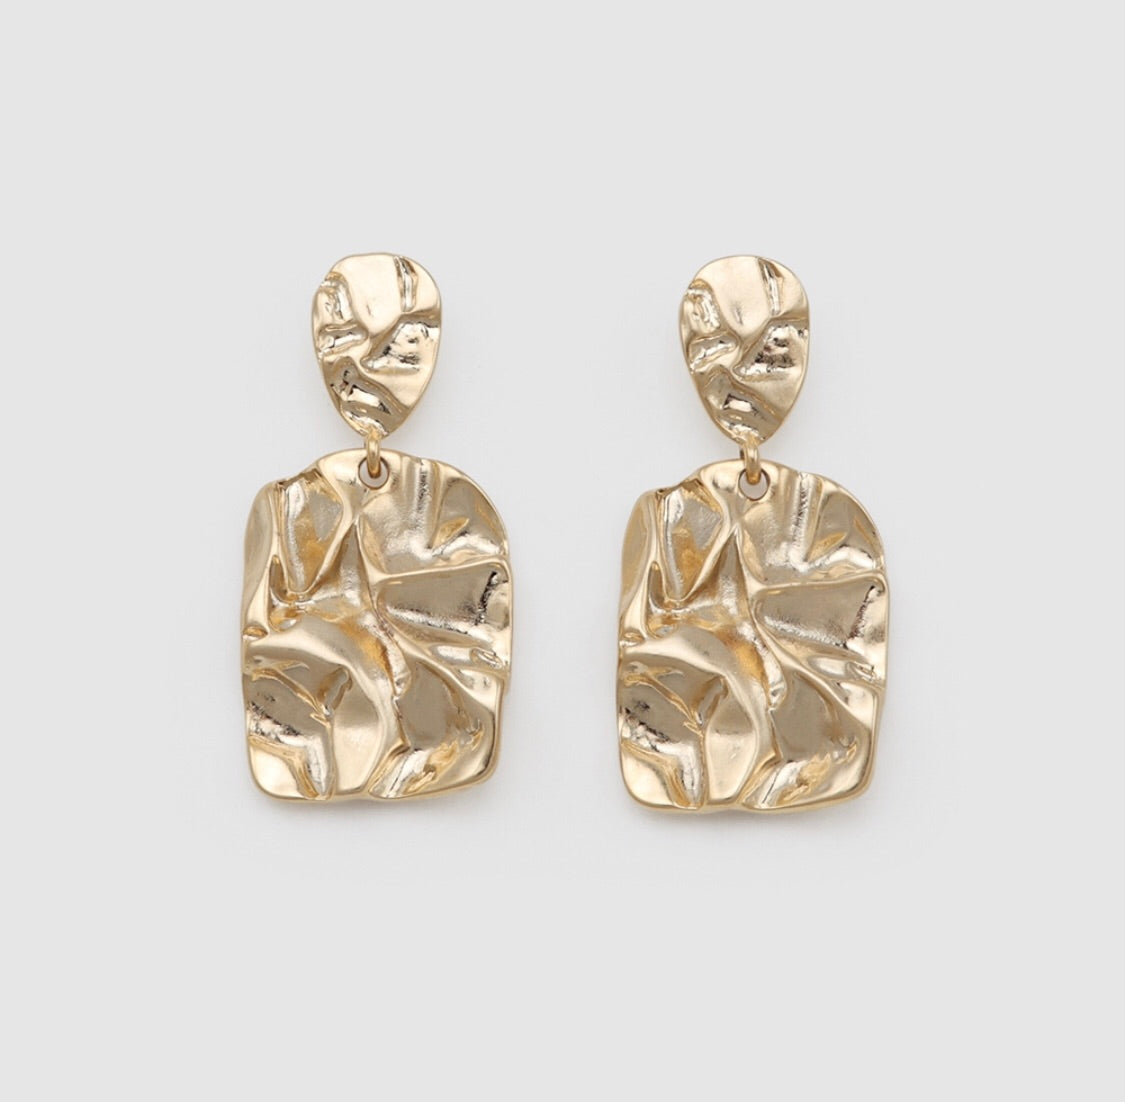 Jolie and Deen Molly Earrings